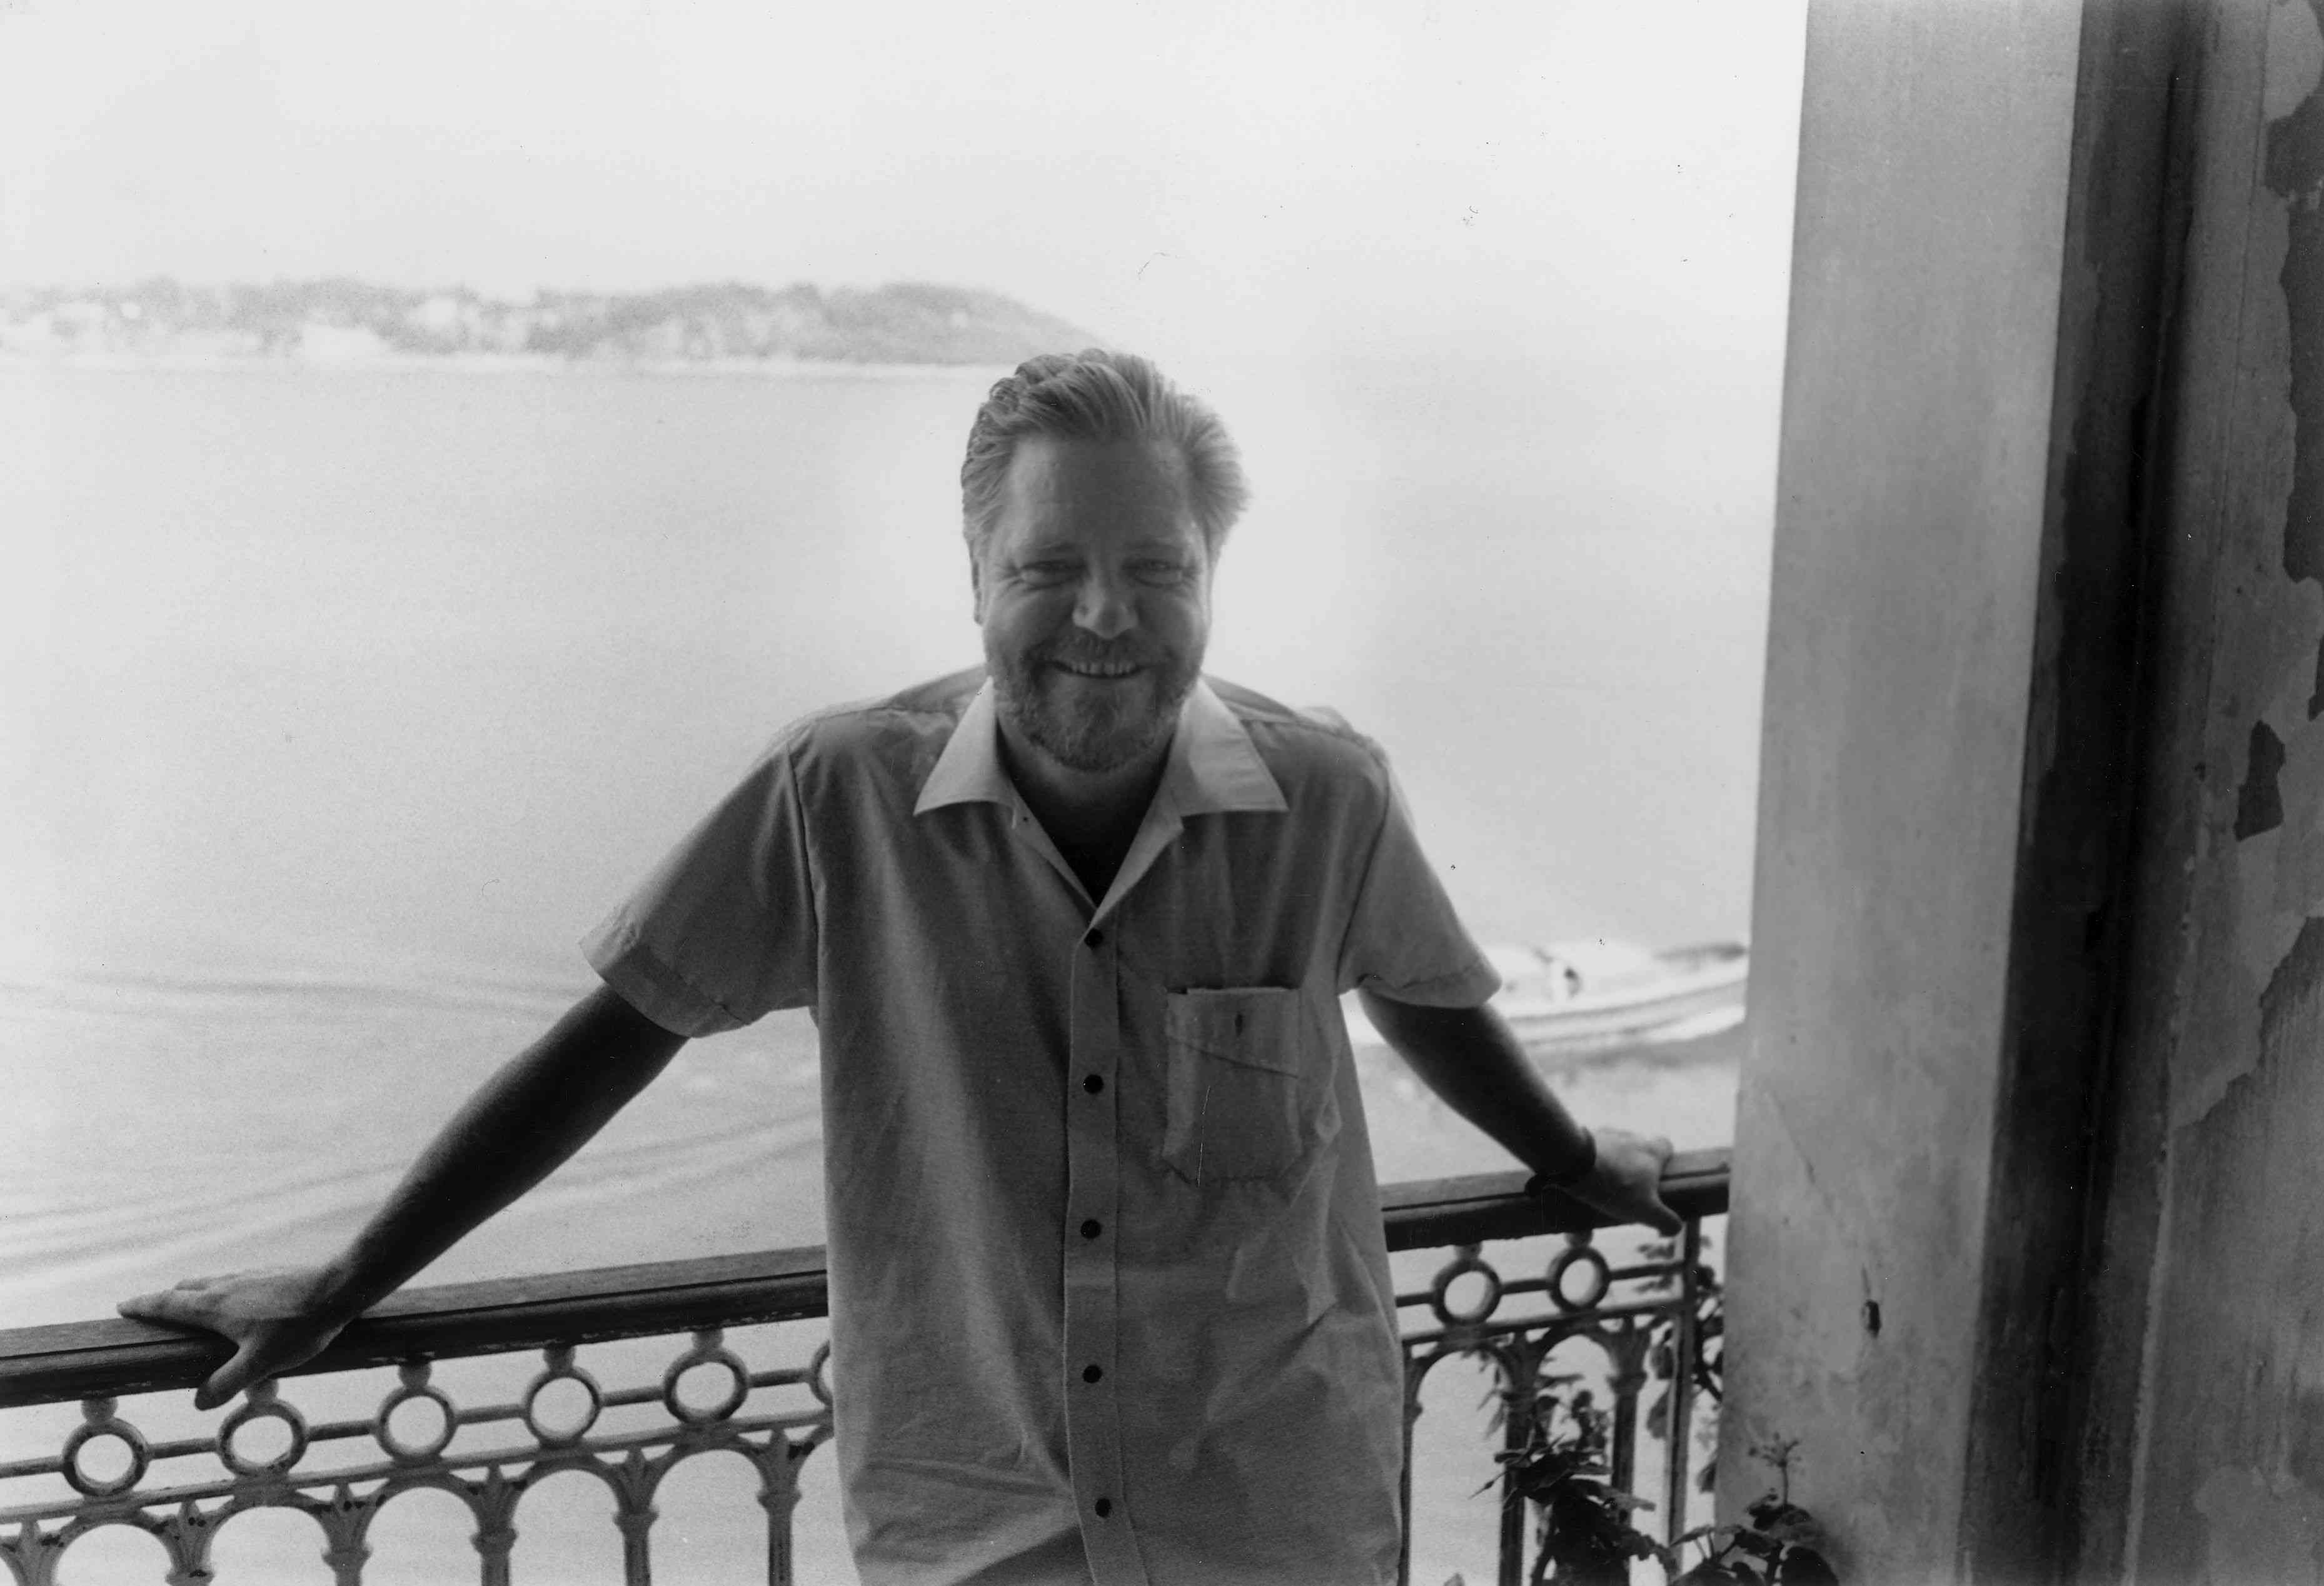 Gerald Durrell posing on balcony in front of water